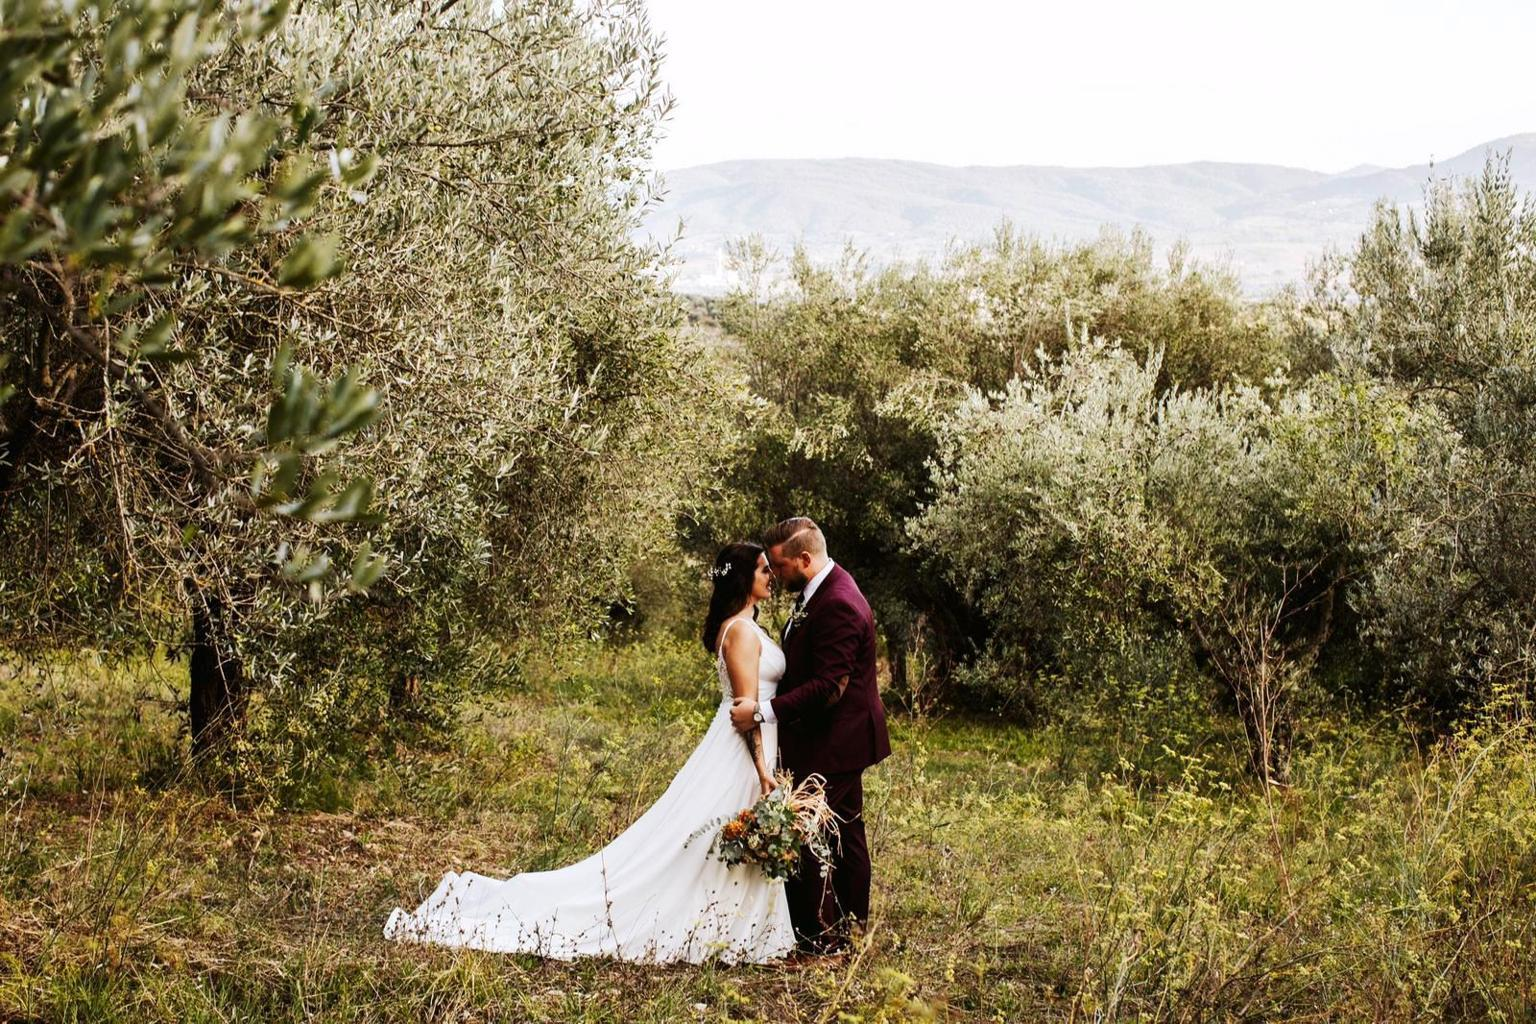 Matrimonio in Umbria - Wedding in Umbria 10